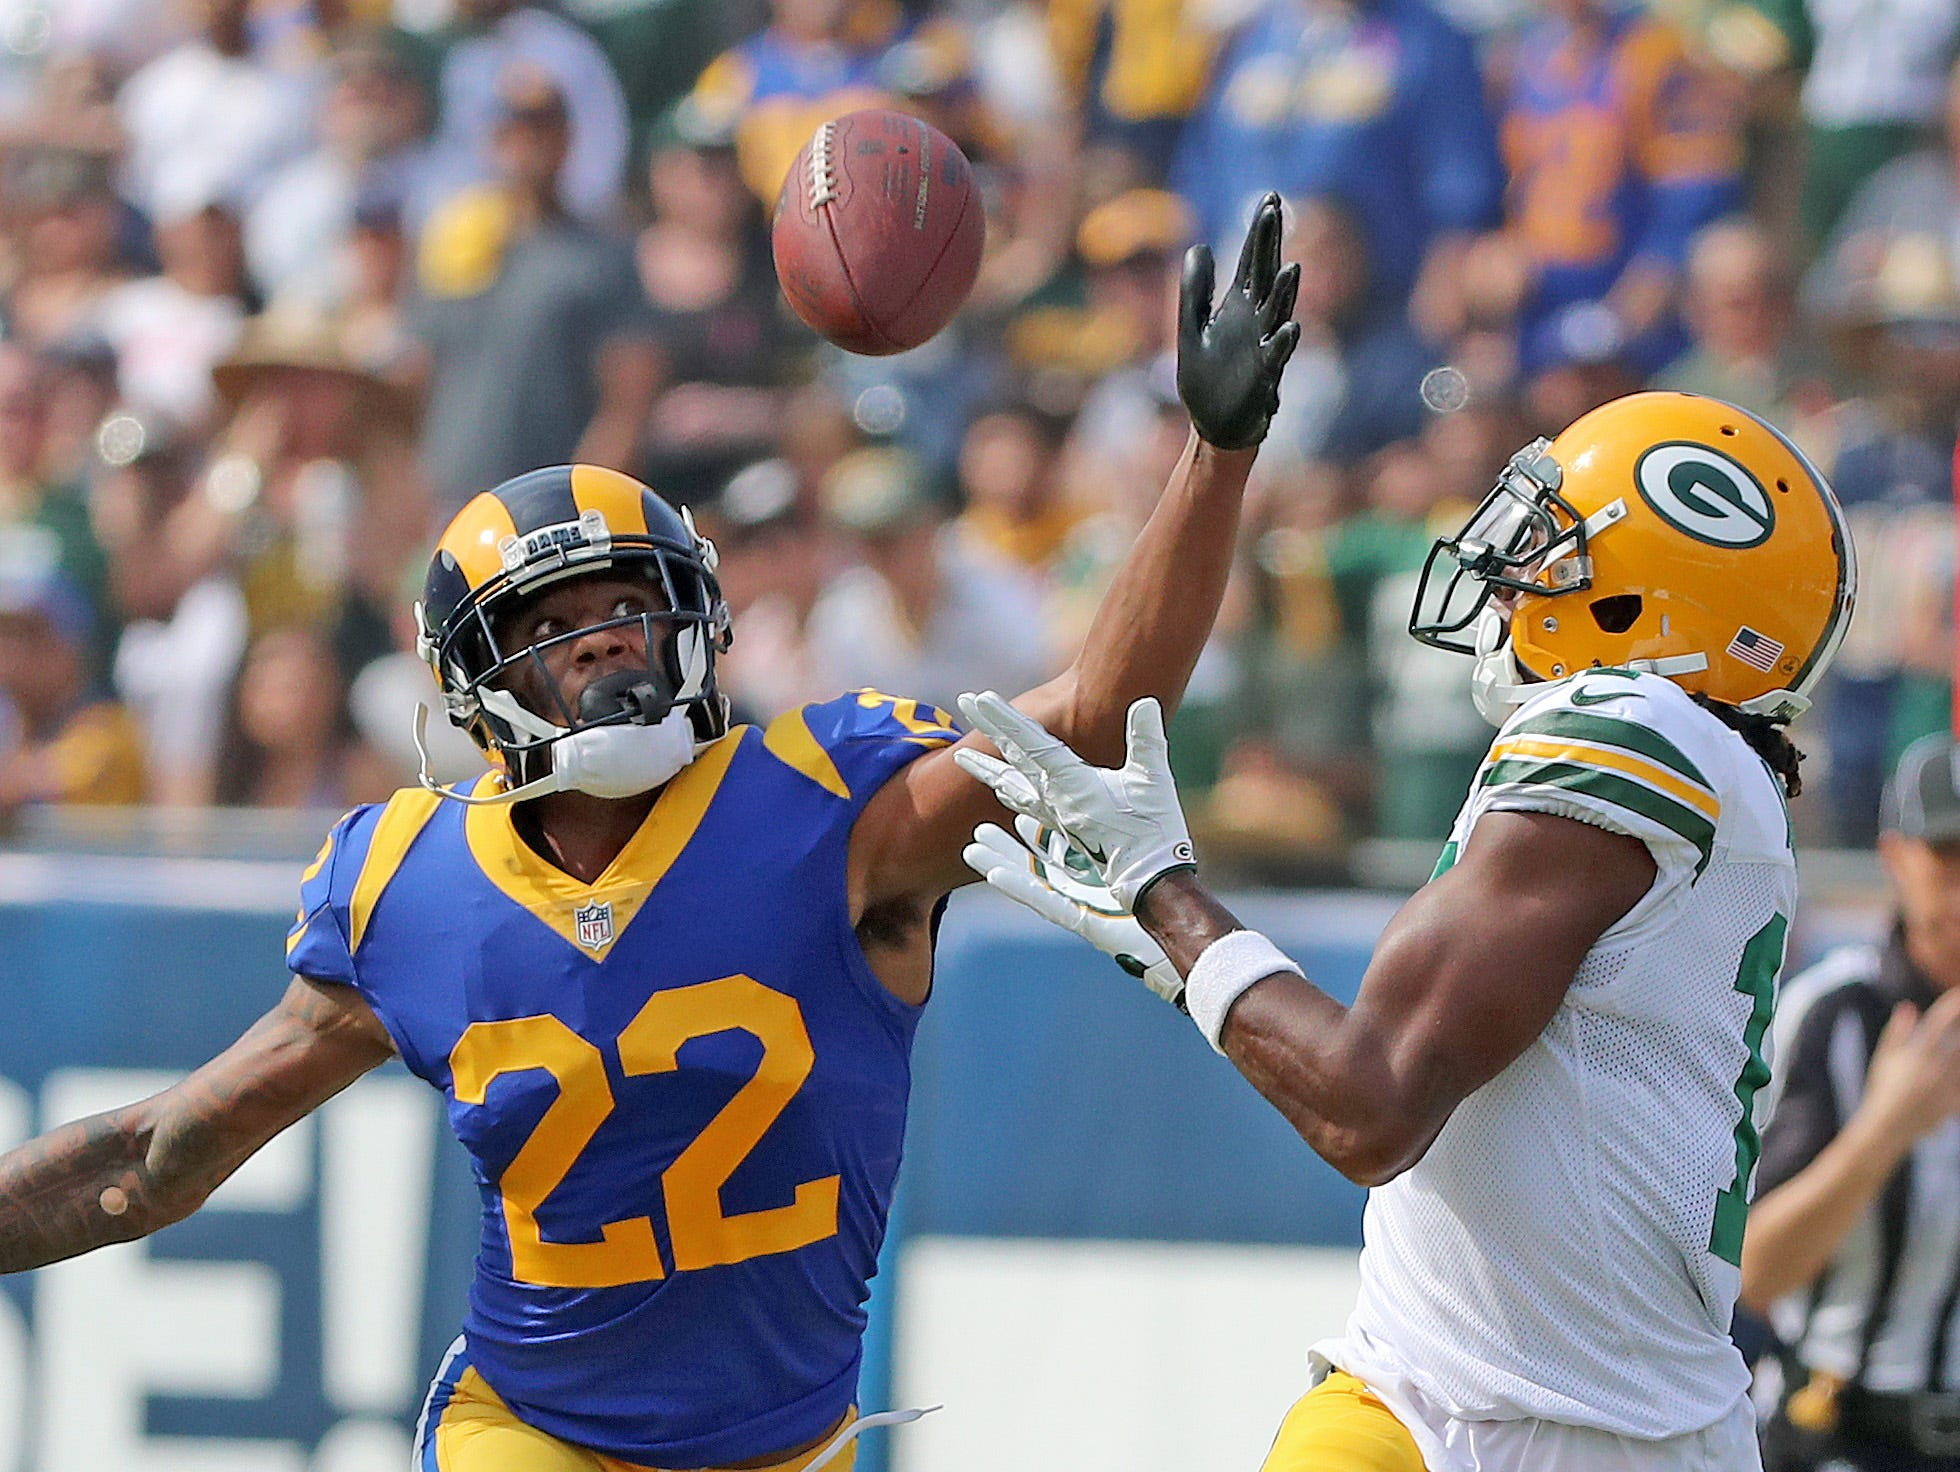 Green Bay Packers wide receiver Davante Adams (17) catcher a long pass against the LA Rams cornerback Marcus Peters (22) Sunday, October 28, 2018 at the Memorial Coliseum in Los Angeles.